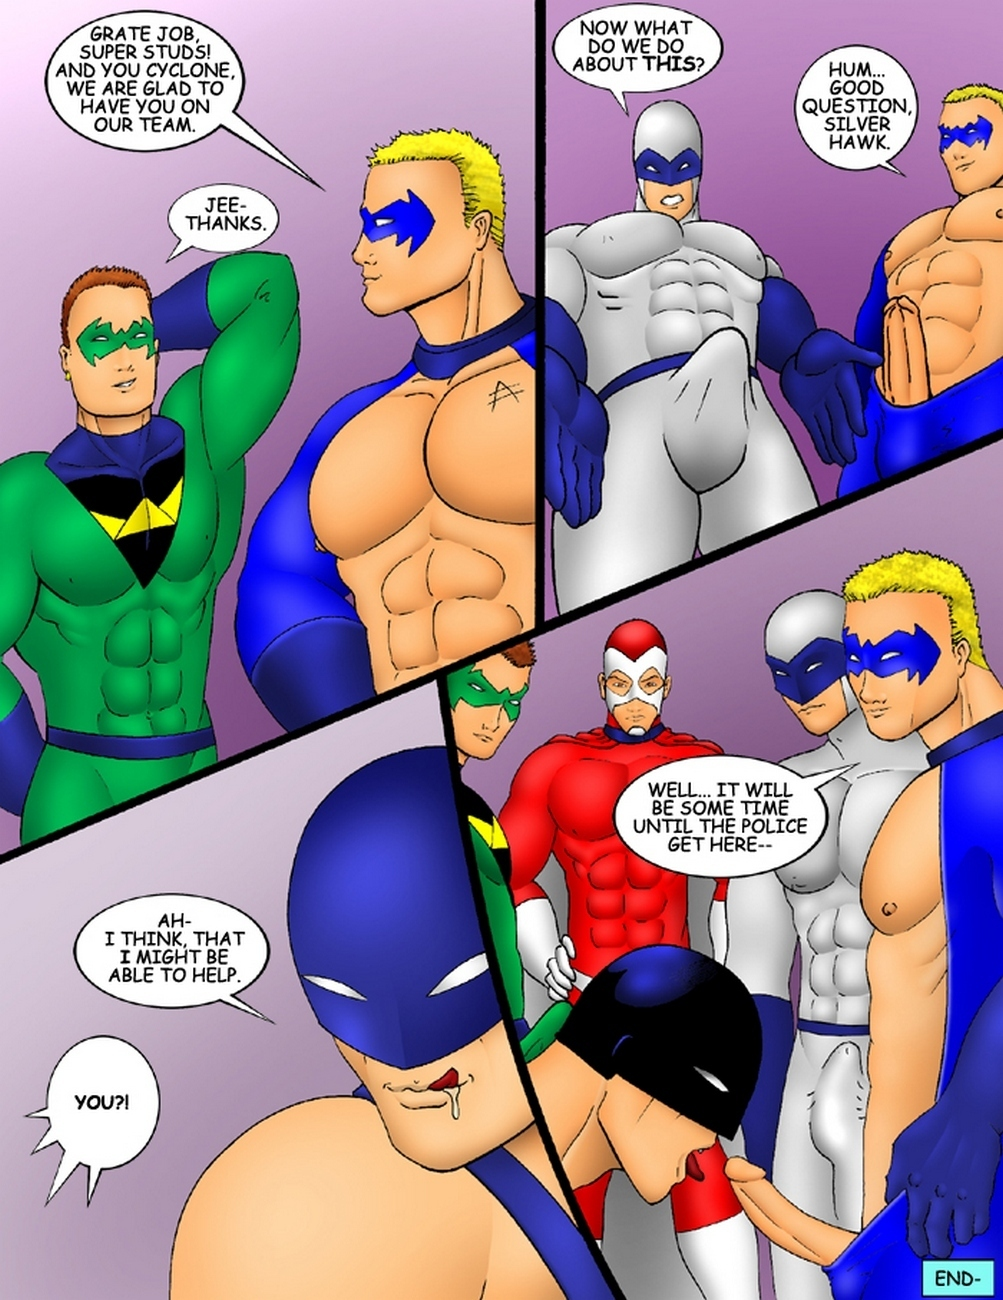 The Super Studs 2 gay furry comic